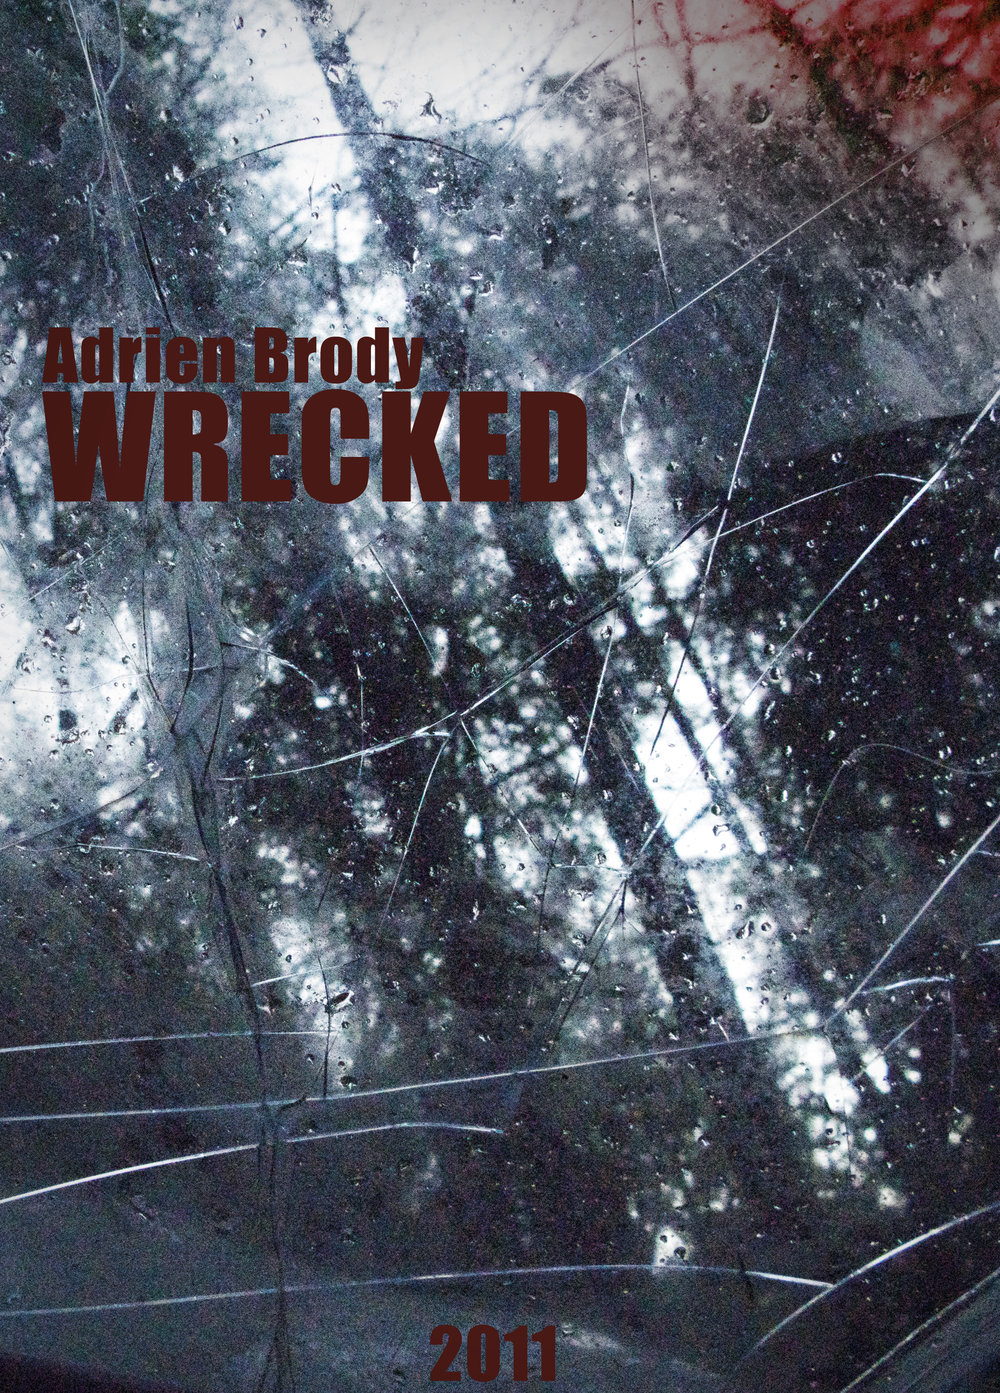 WRECKED_Poster 01.jpg